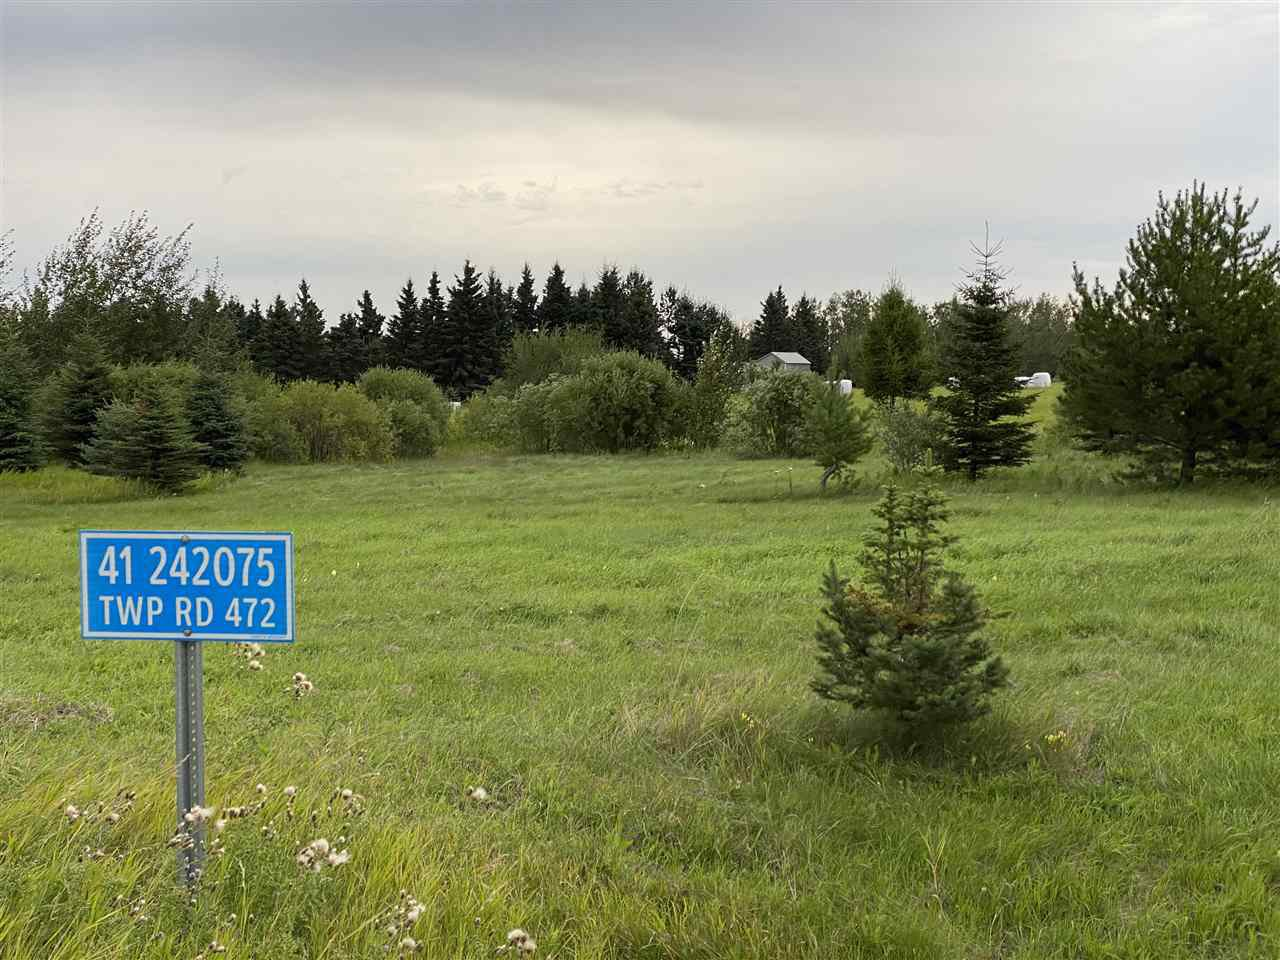 Main Photo: 41 242075 TWP RD 472: Rural Wetaskiwin County Rural Land/Vacant Lot for sale : MLS®# E4211566